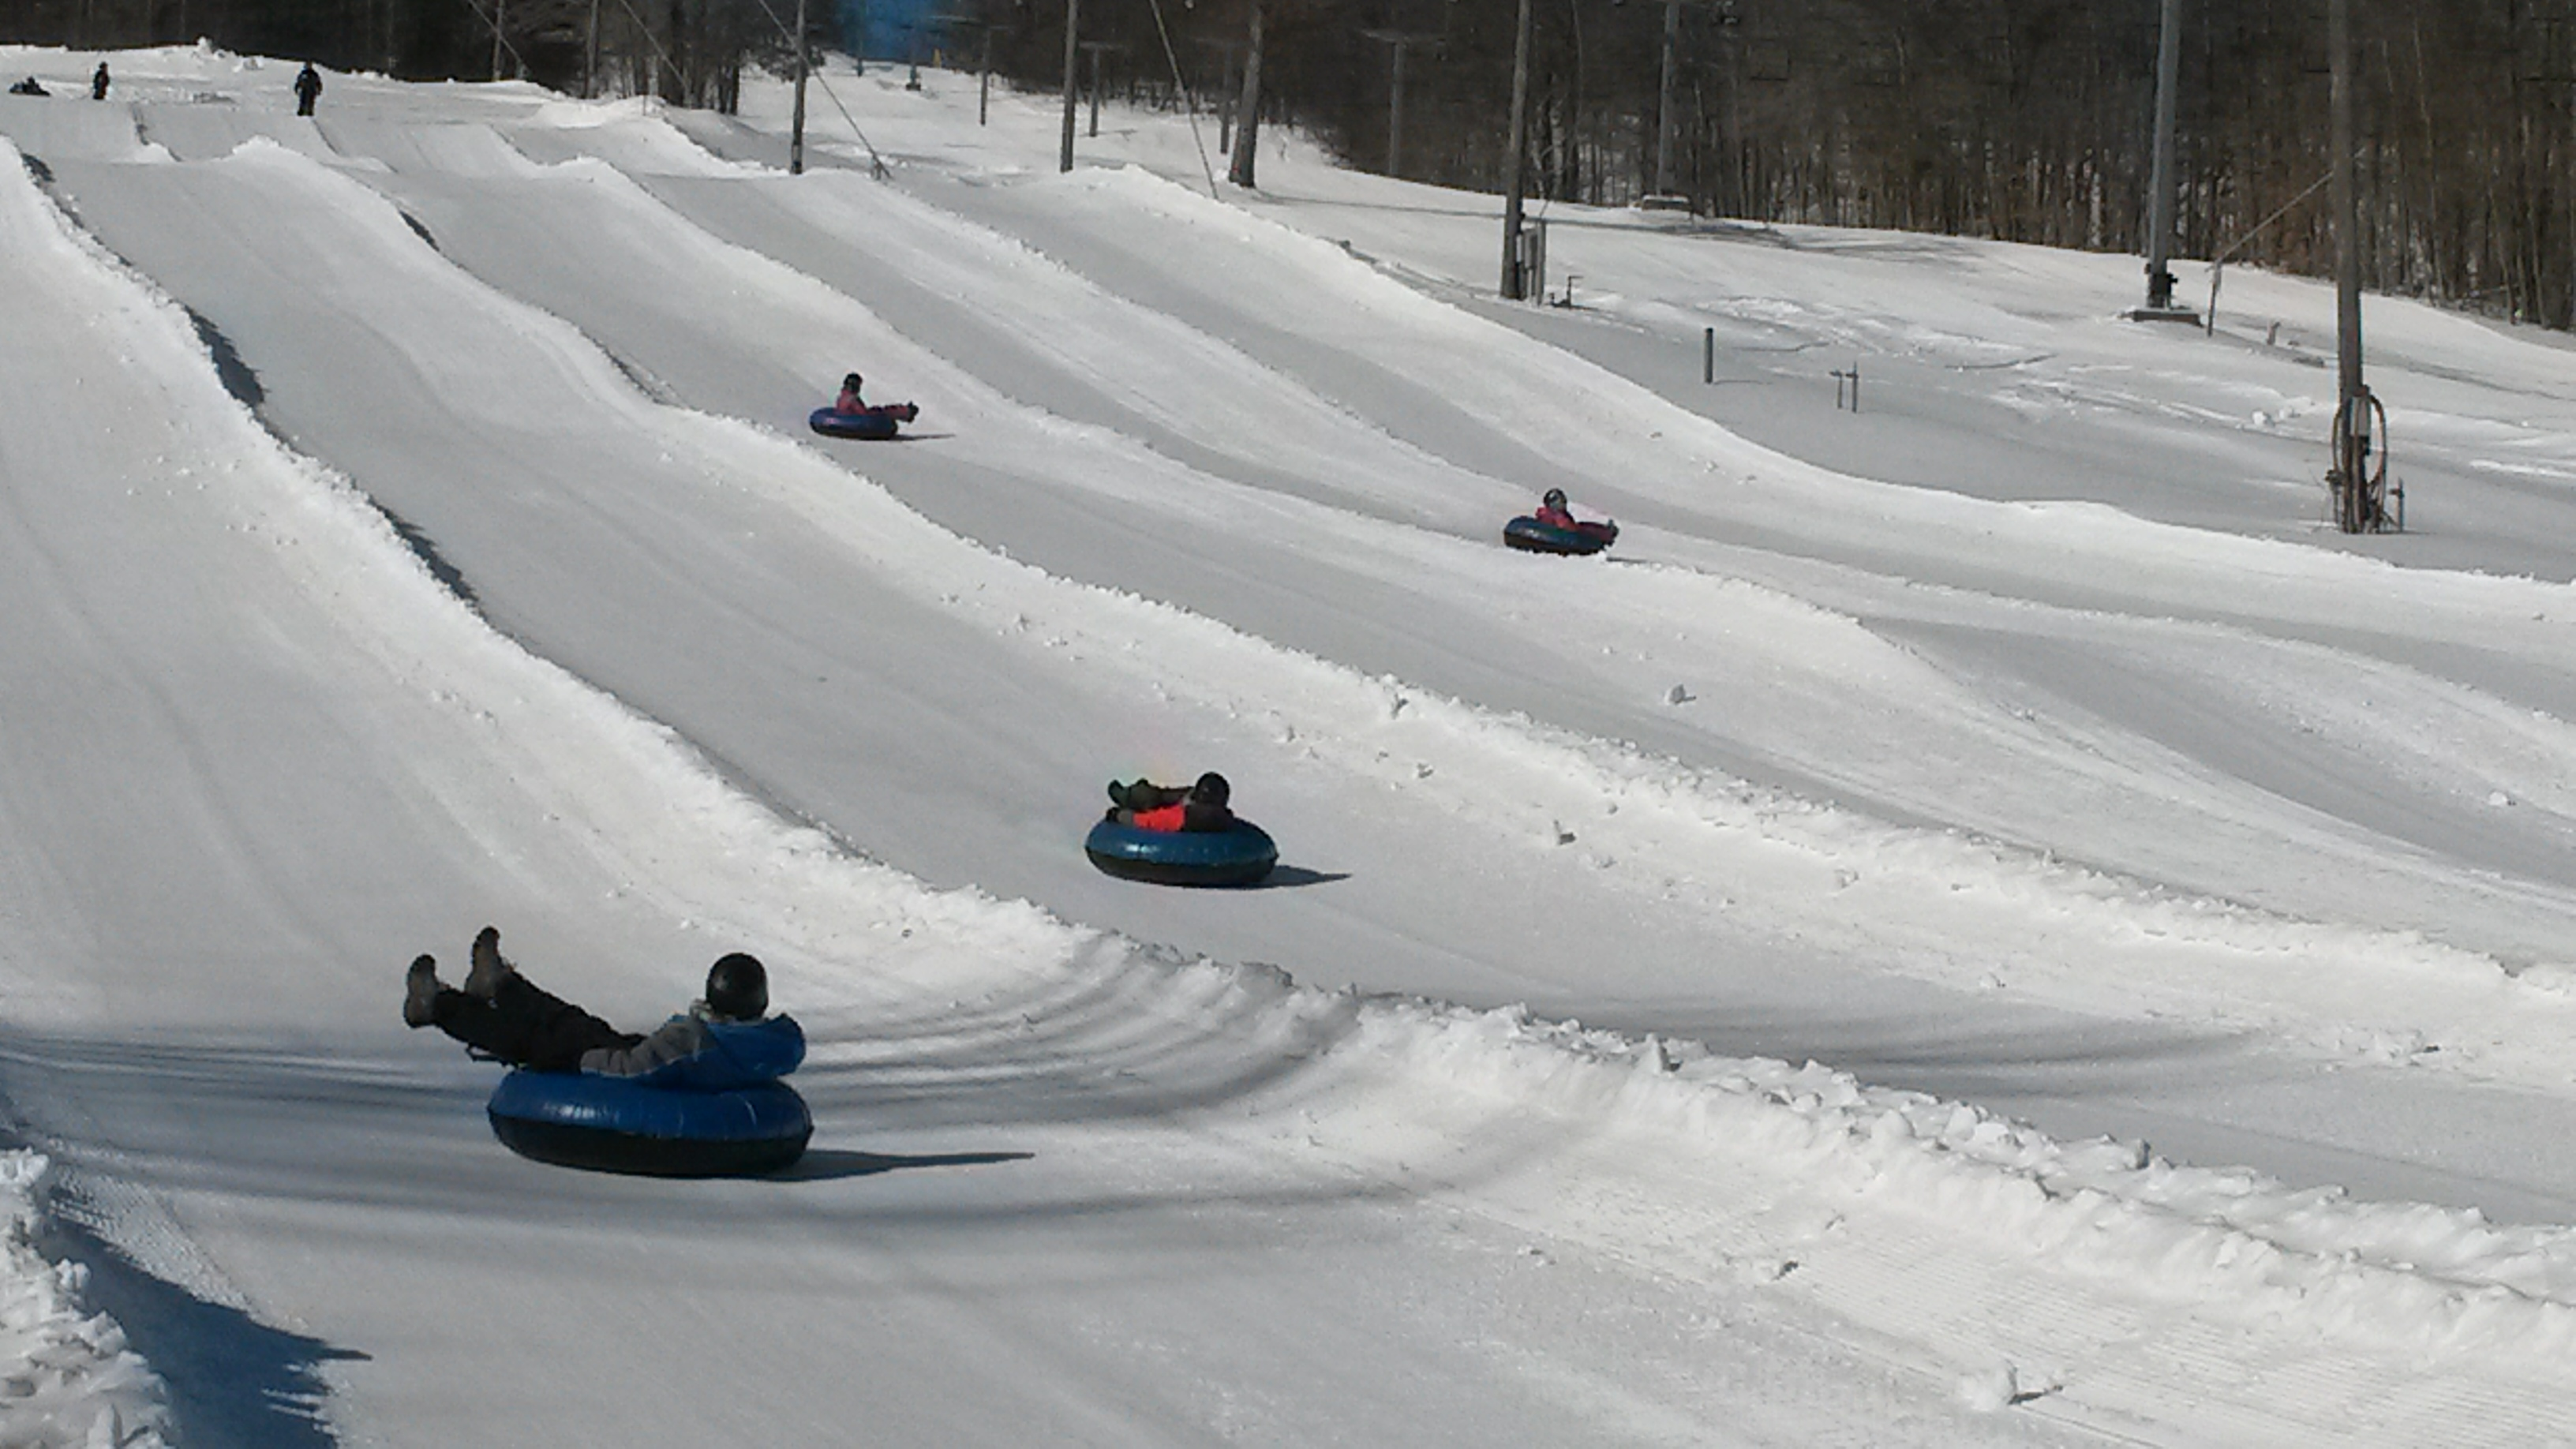 Snow tubing in woodbury ct